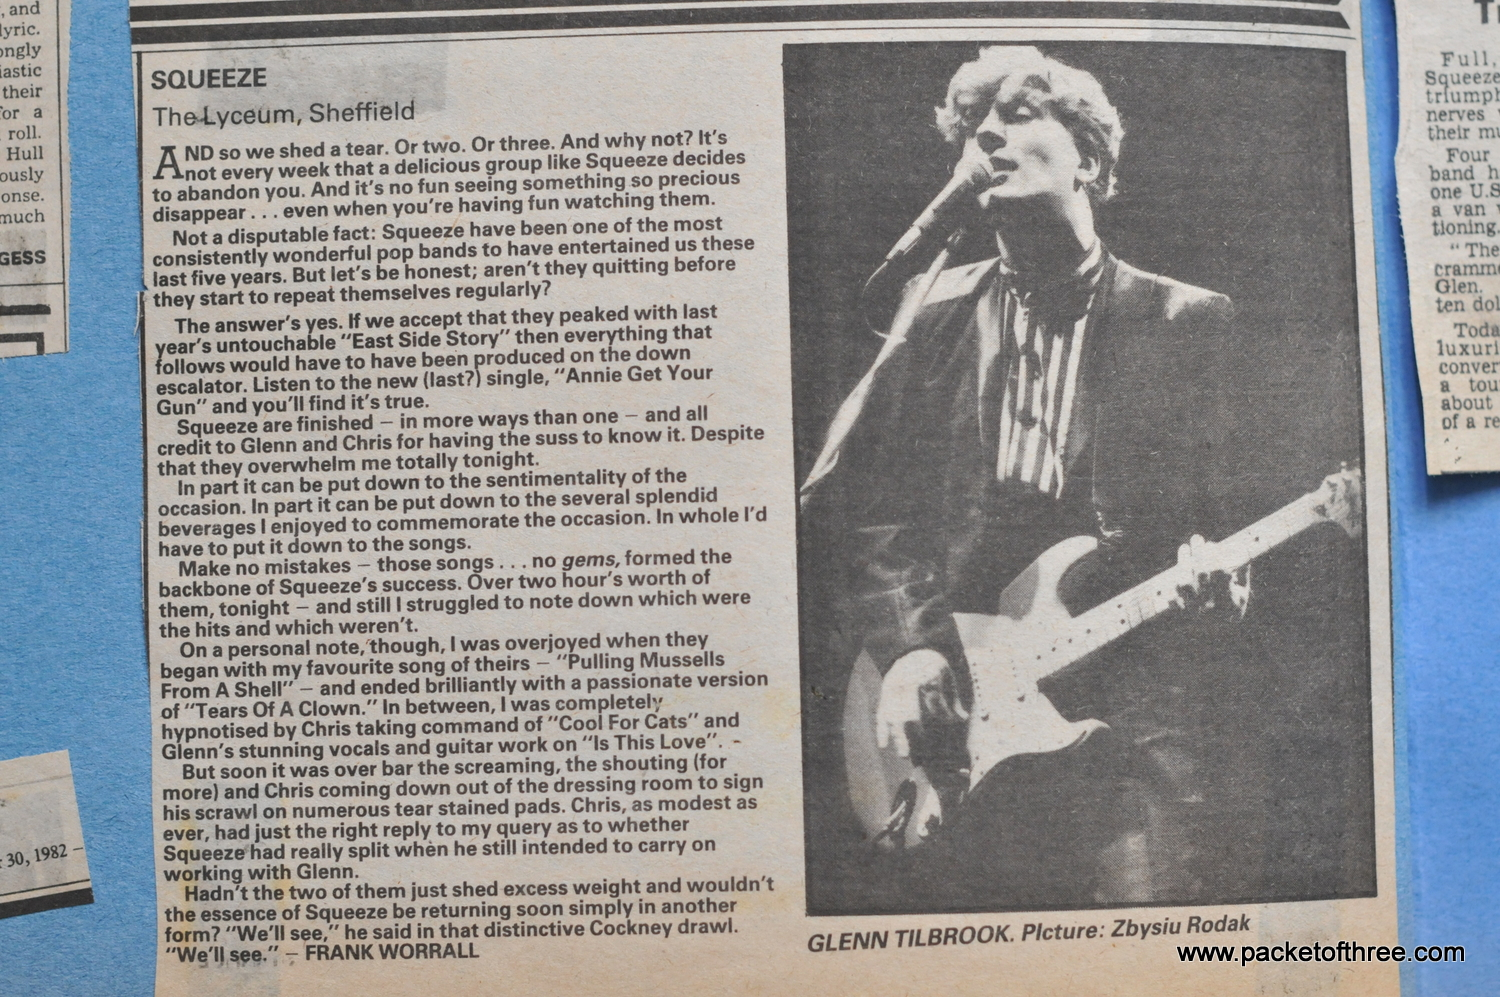 1982-10-23 review